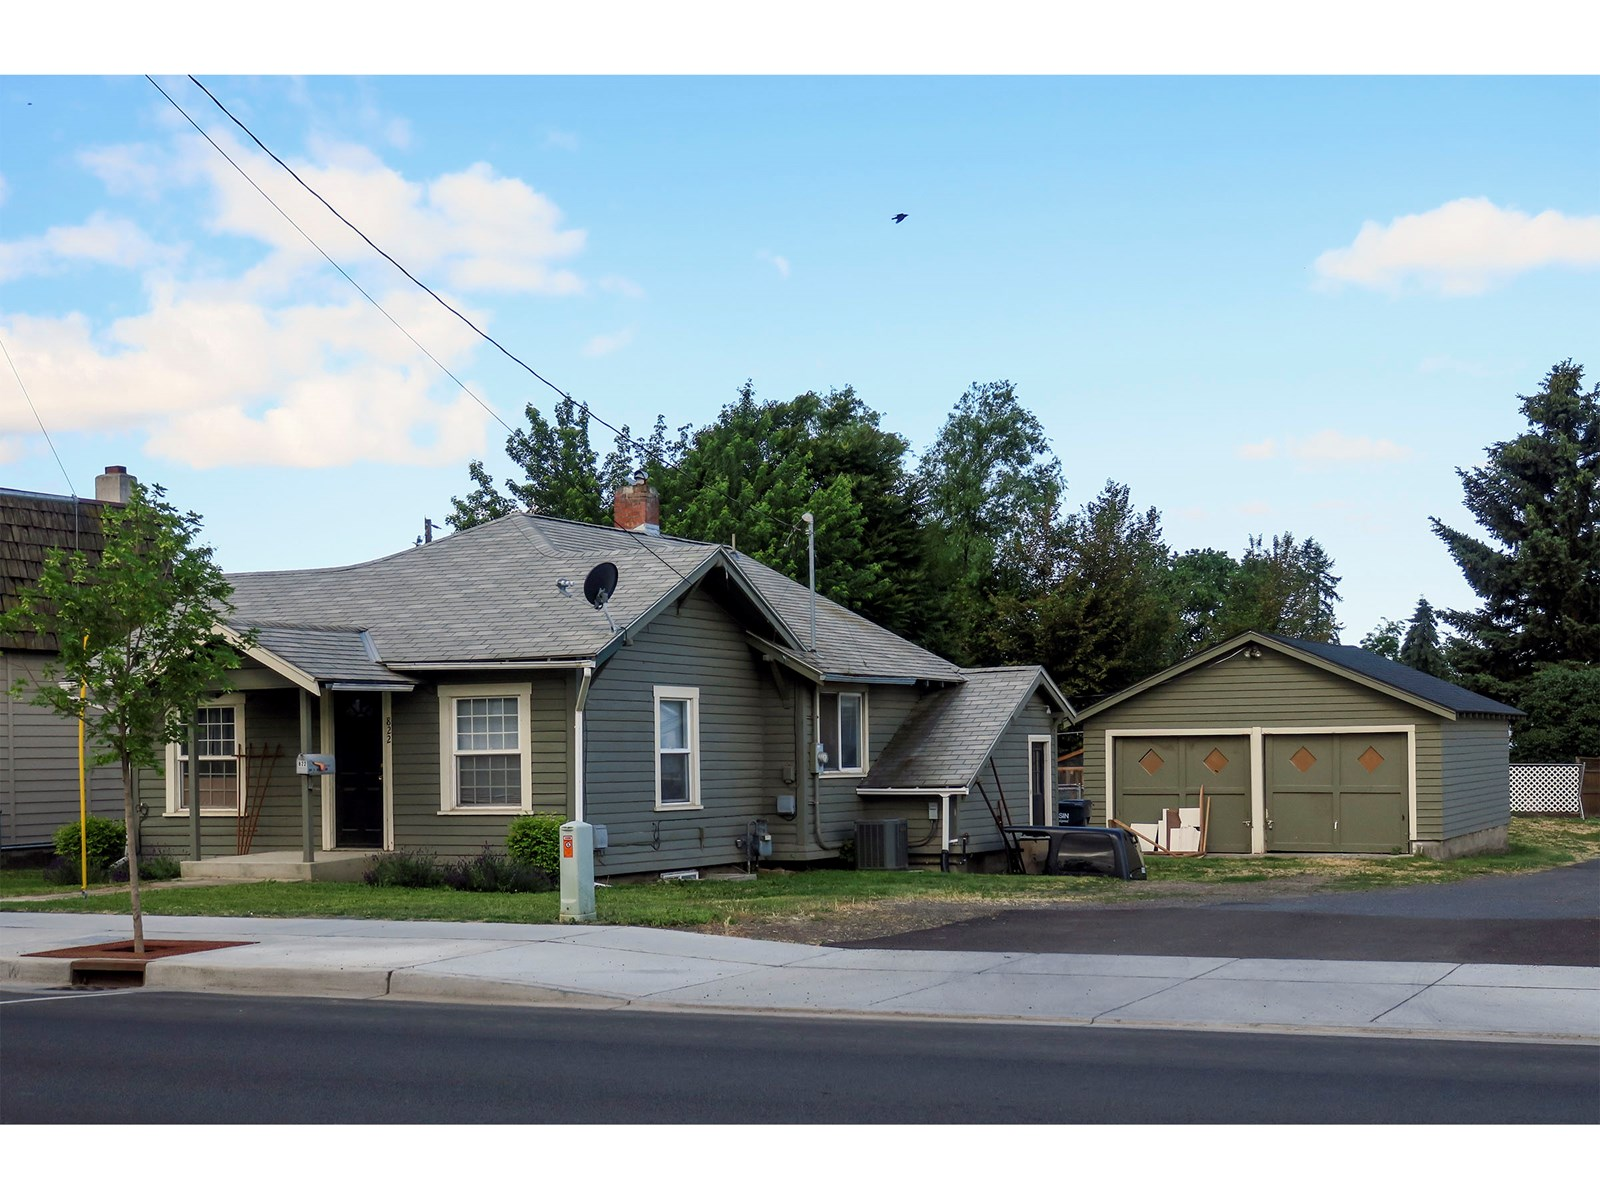 House for Sale College Place WA near Walla Walla University